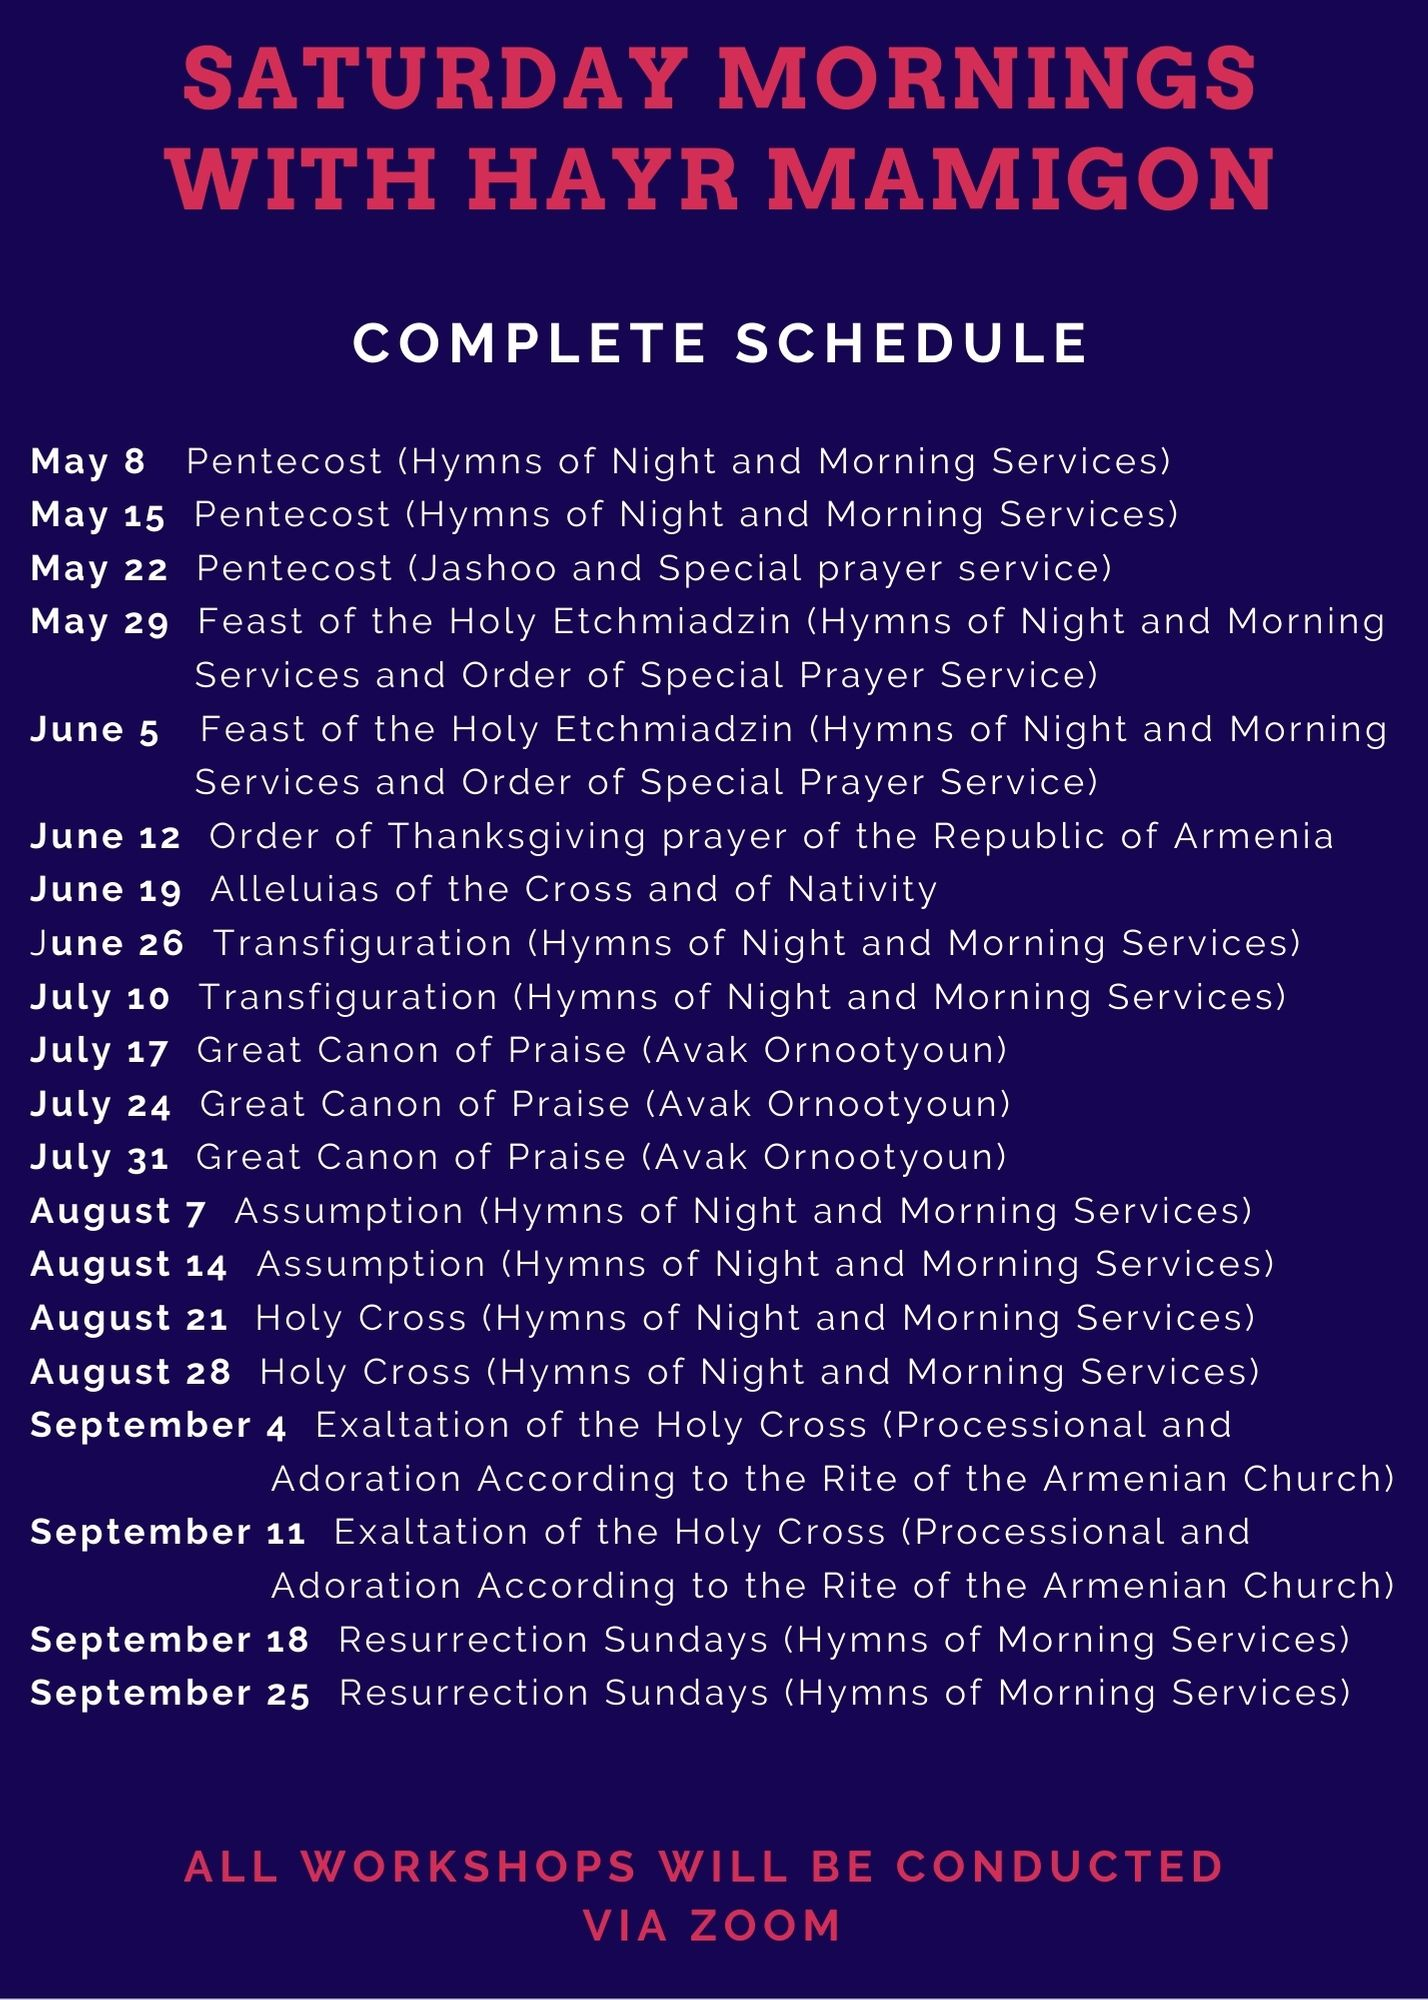 Saturdays with HM complete schedule